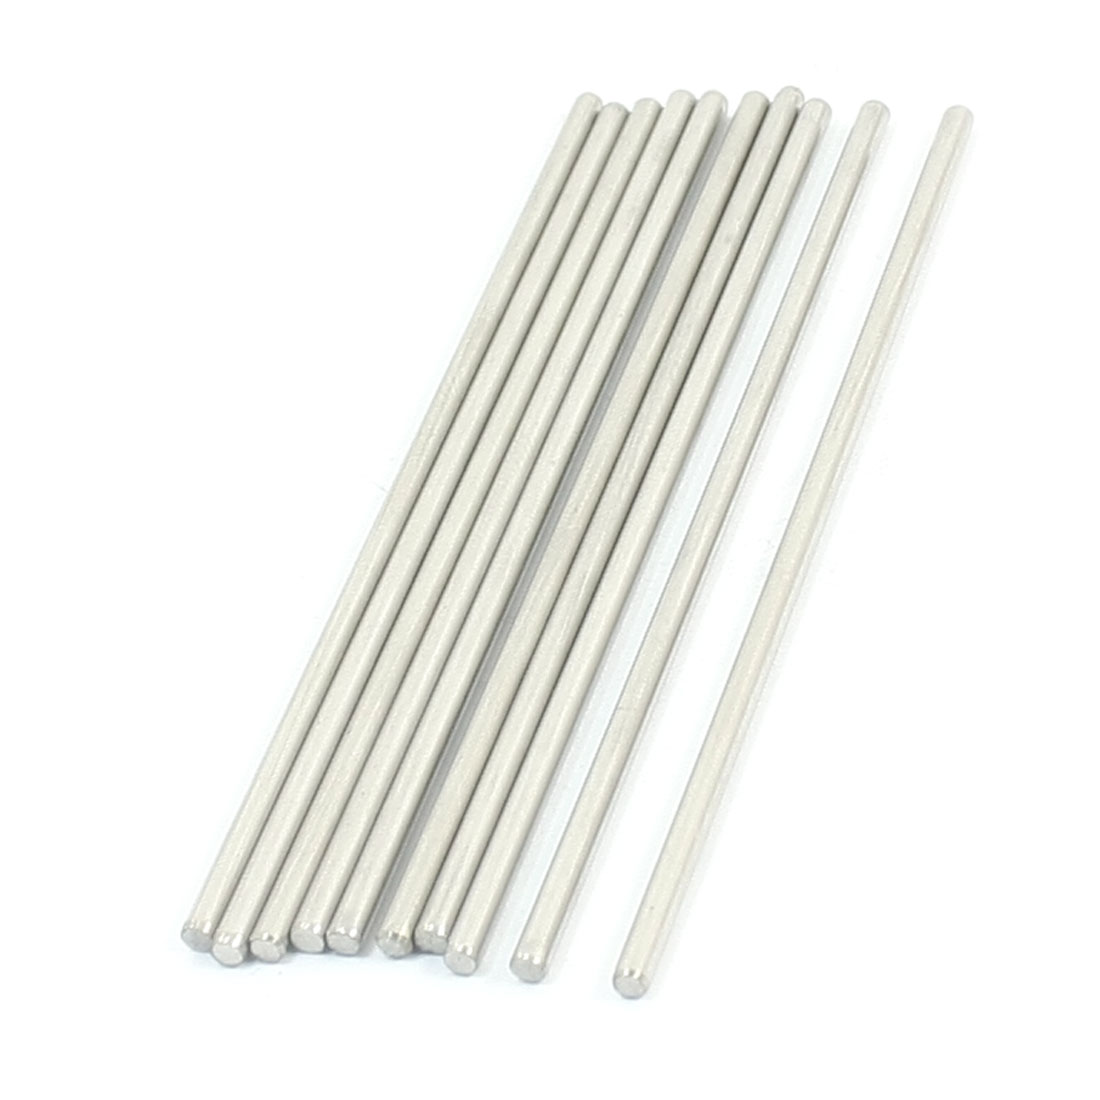 10Pcs RC Helicopter Spare Parts Round Rods Bars 90mm x 2.5mm